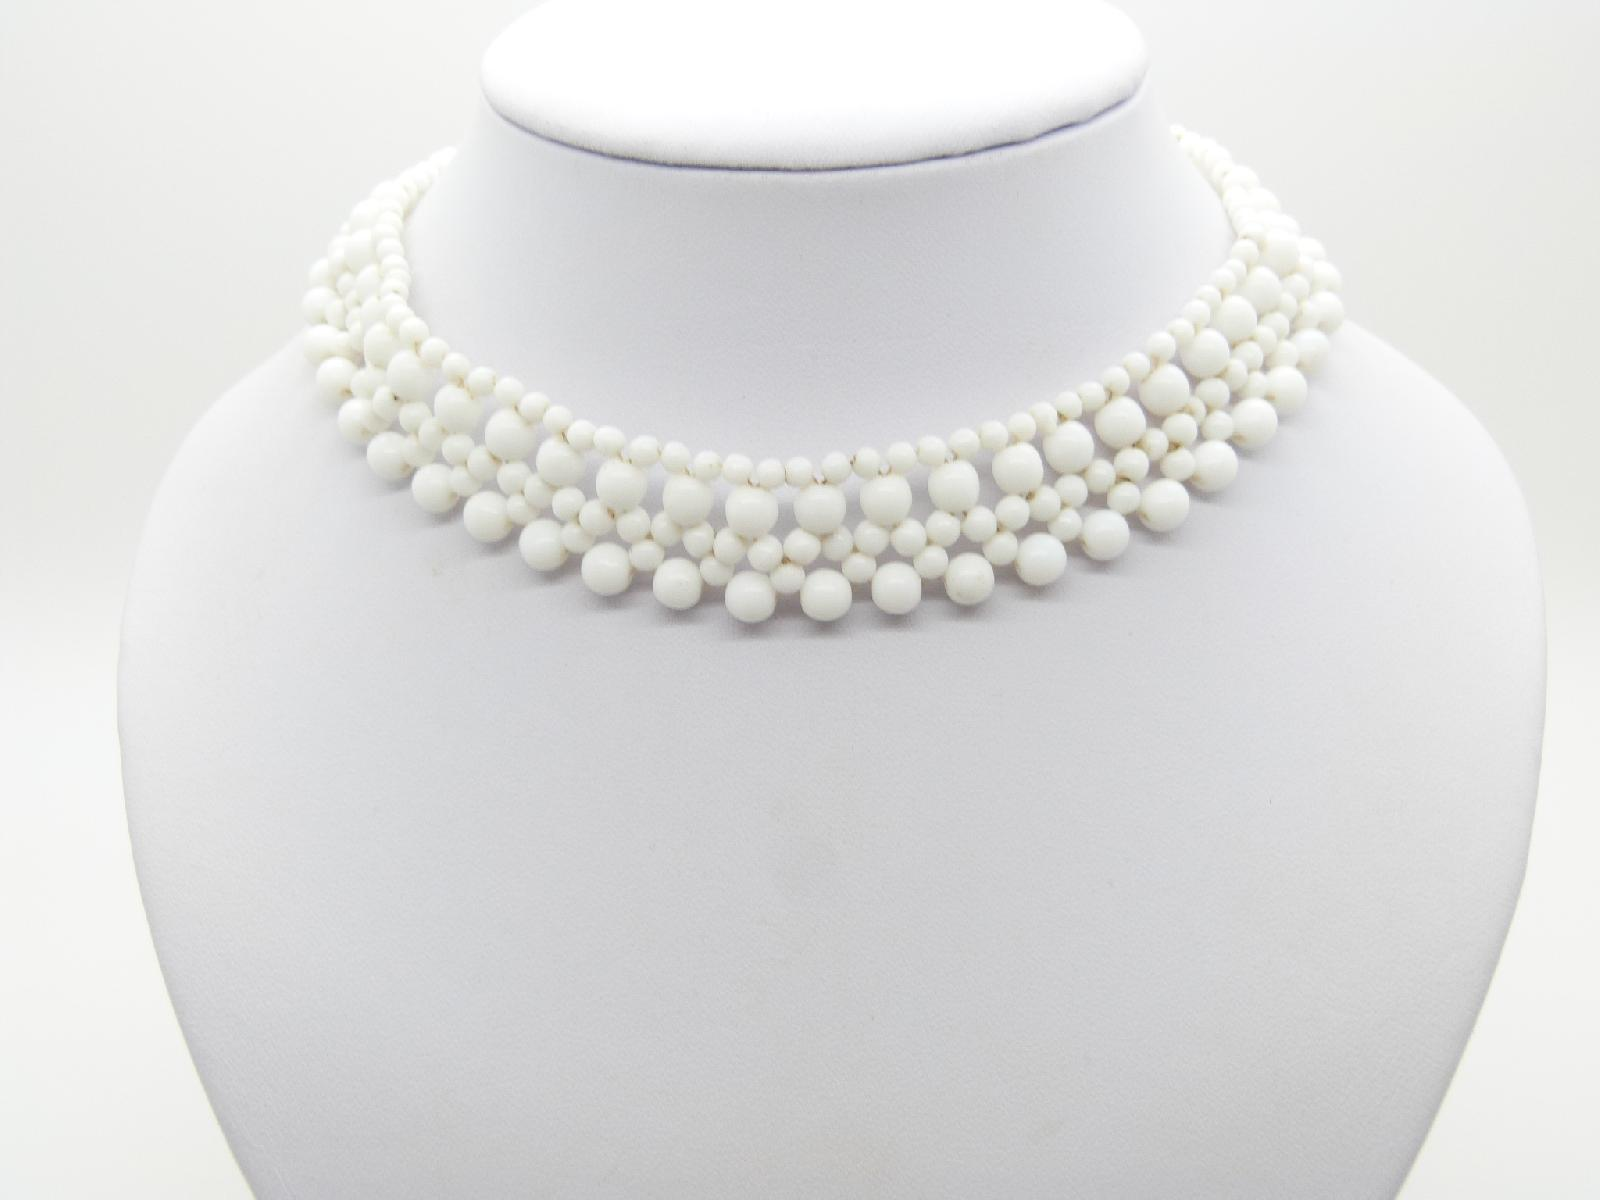 £13.00 - Vintage 50s Pretty and Feminine White Glass Bead Choker Necklace